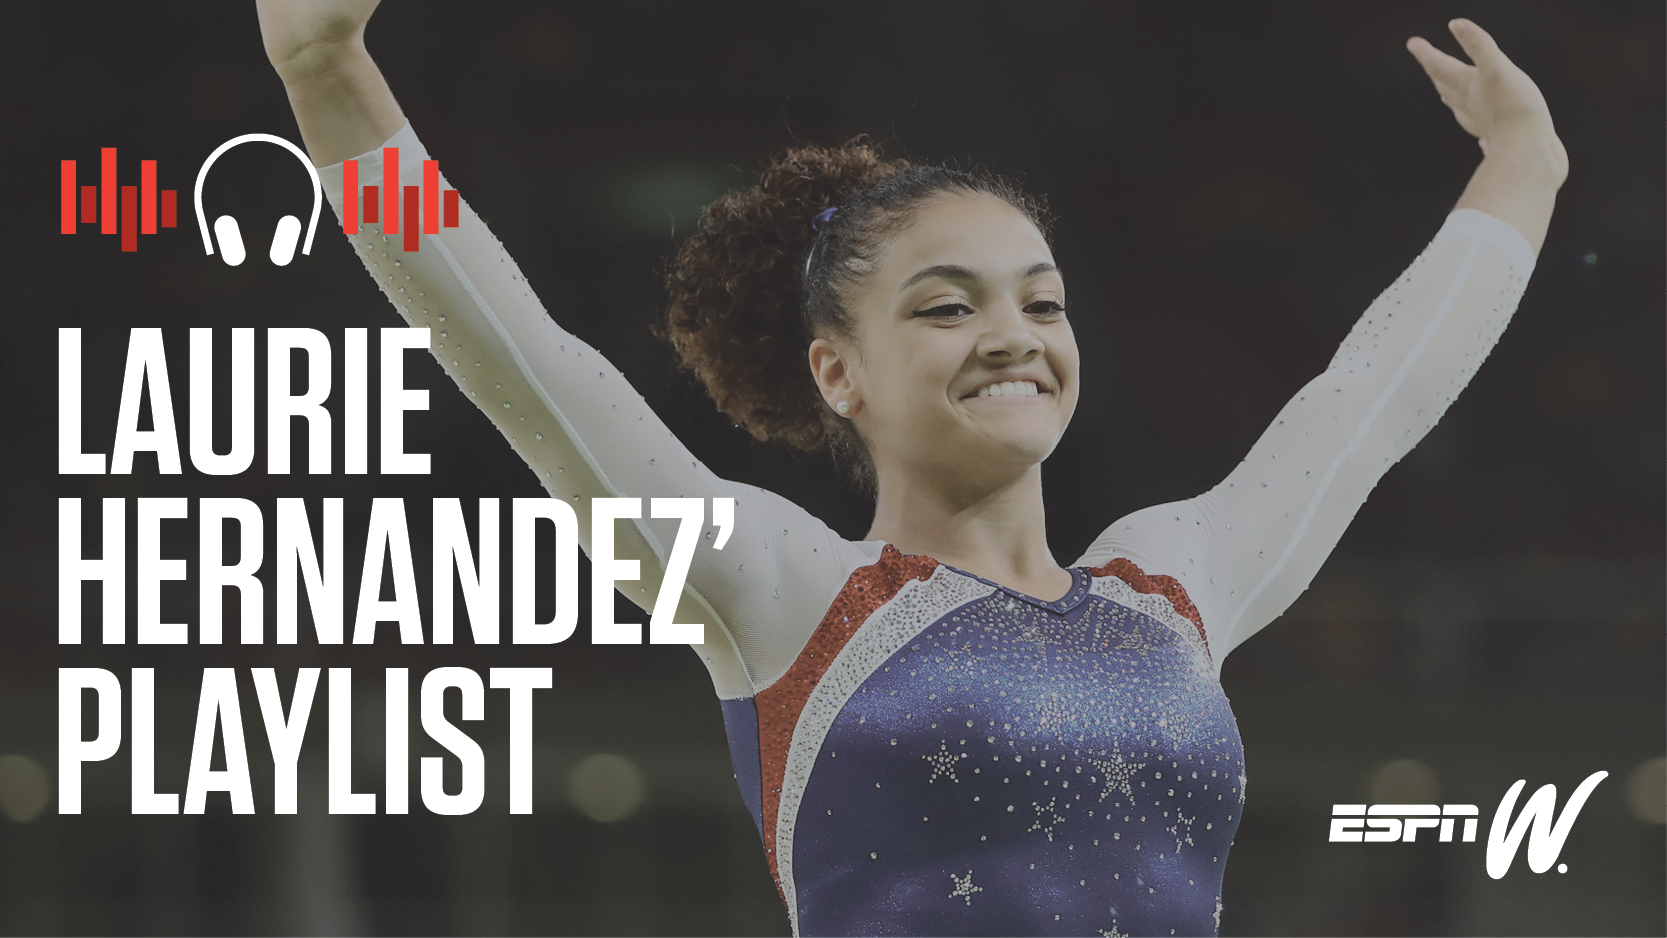 Spotify Athlete Playlist - Laurie Hernandez